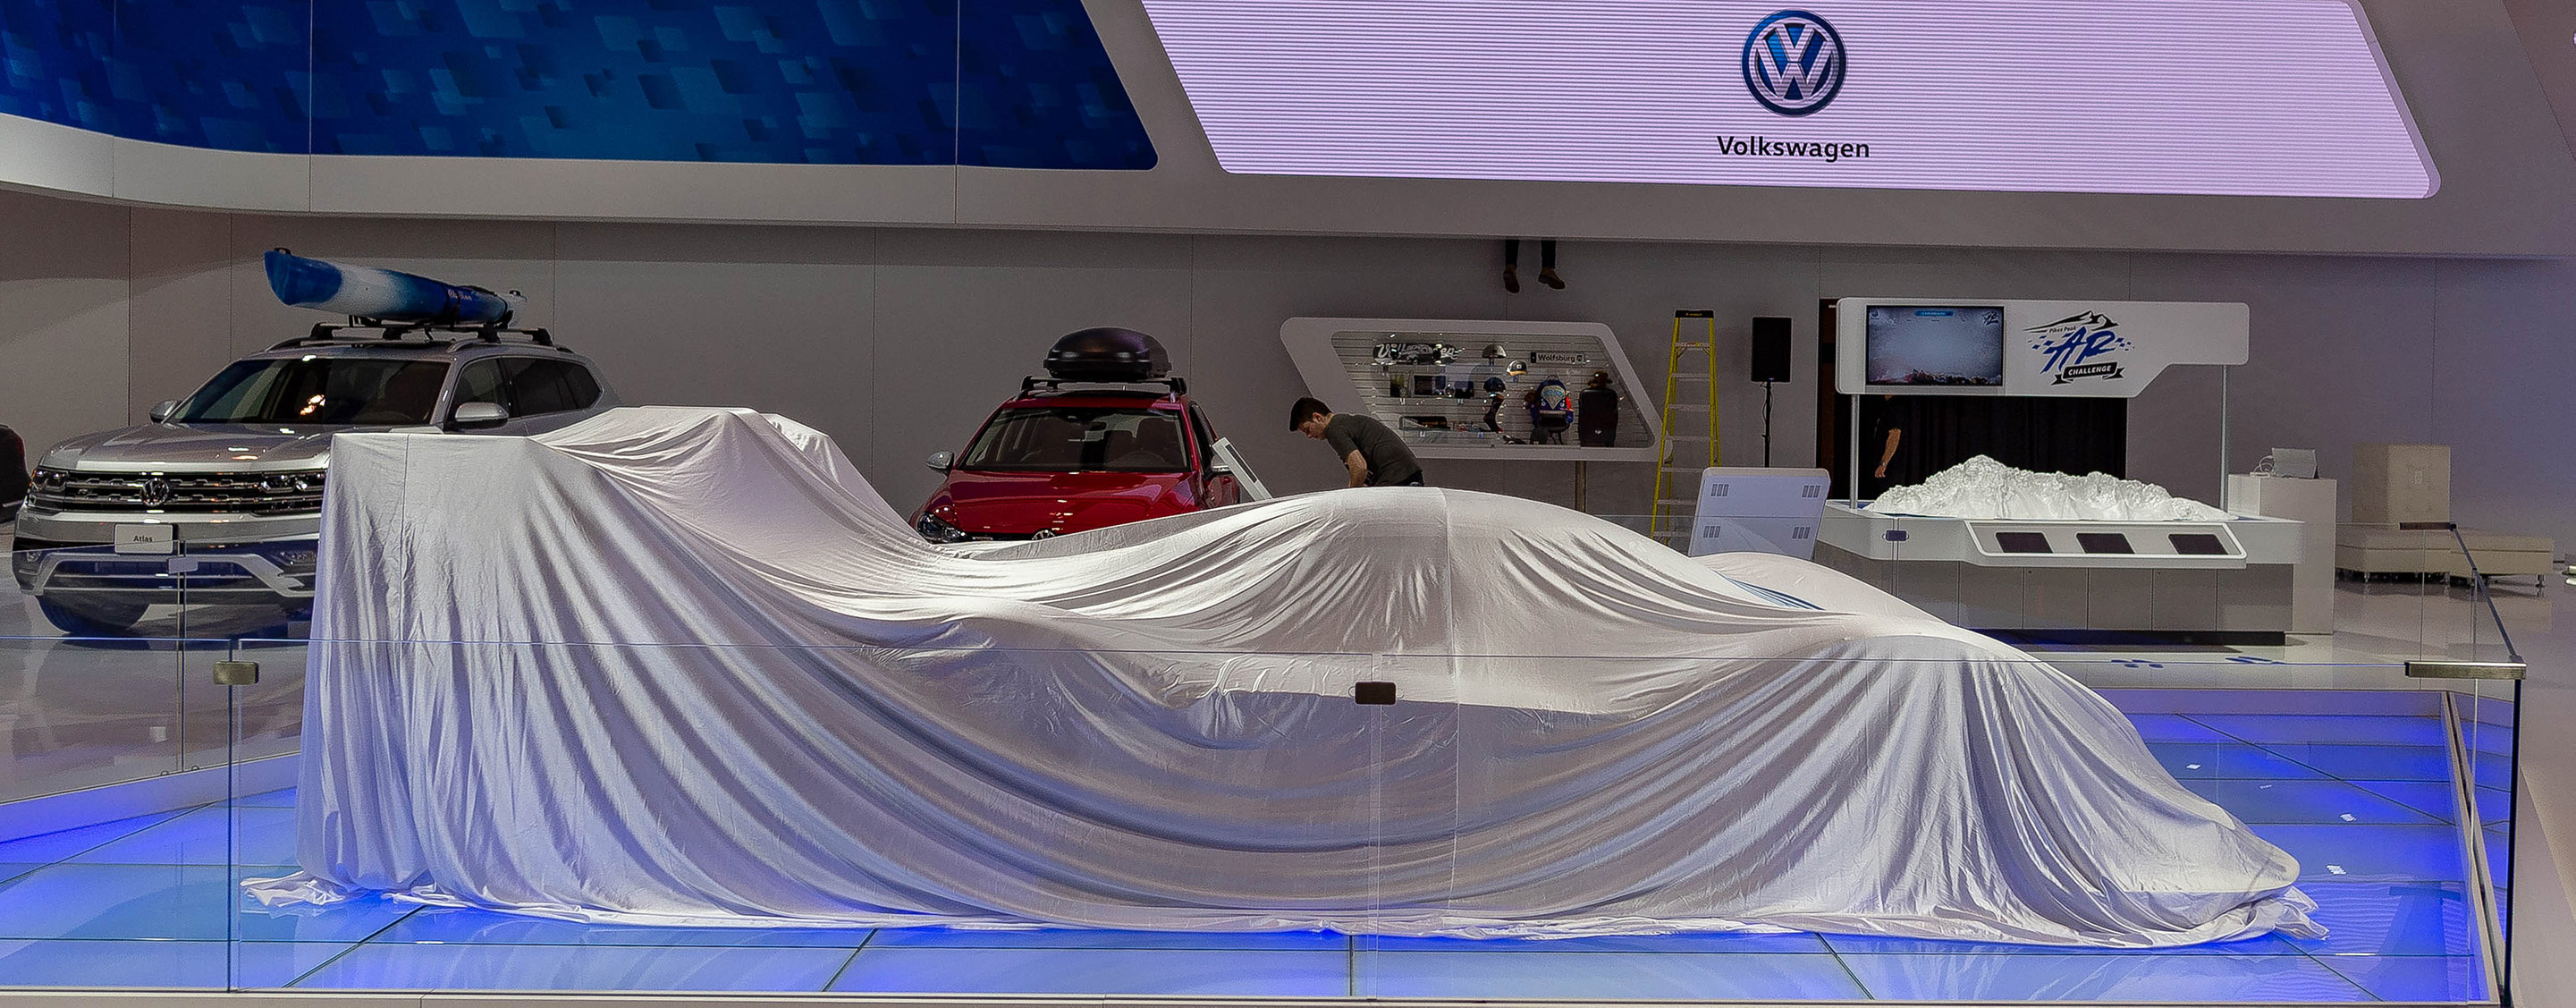 TrackWorthy - CIAS_VW motorsoiort I. D. R all electric under wraps